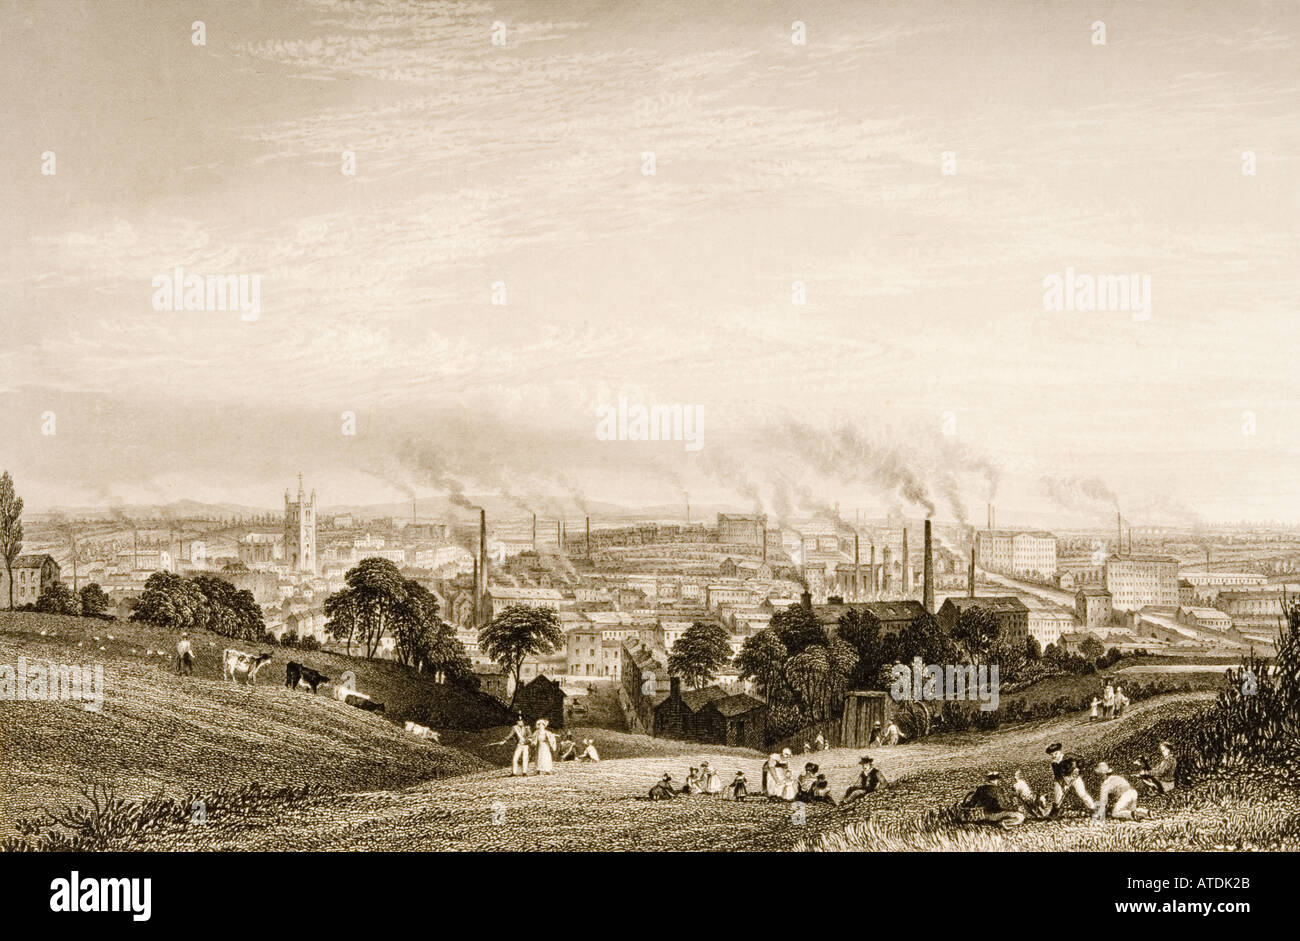 General view of Stockport, Lancashire, England in the 1830's showing cotton mills. Stock Photo